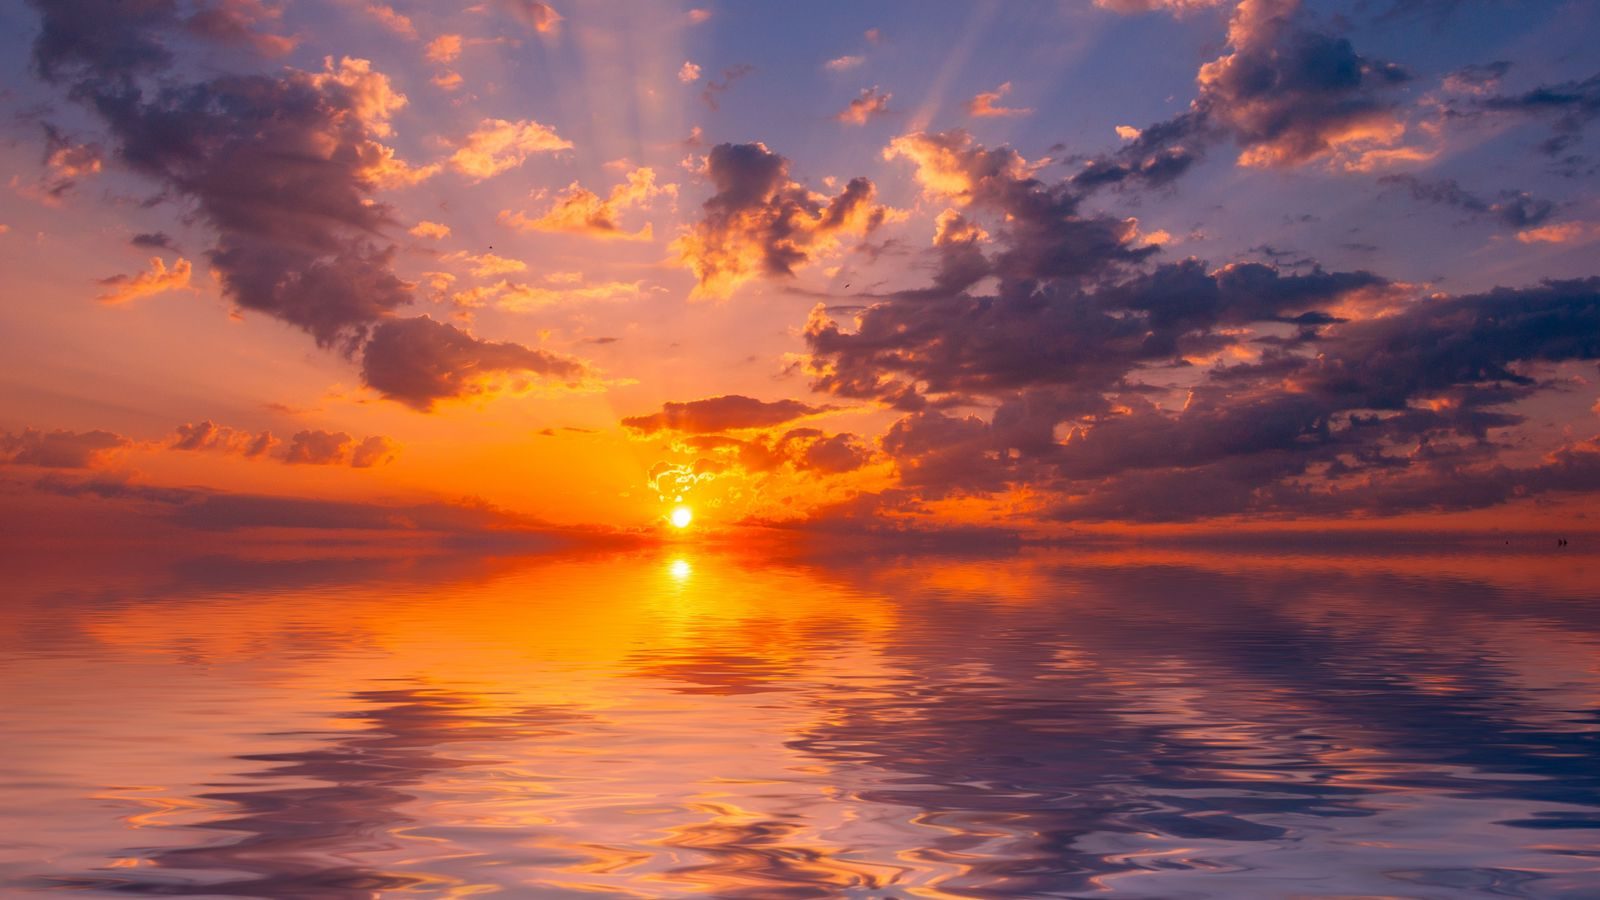 1600x900 Wallpaper sea, sunset, horizon, sun, reflection, clouds